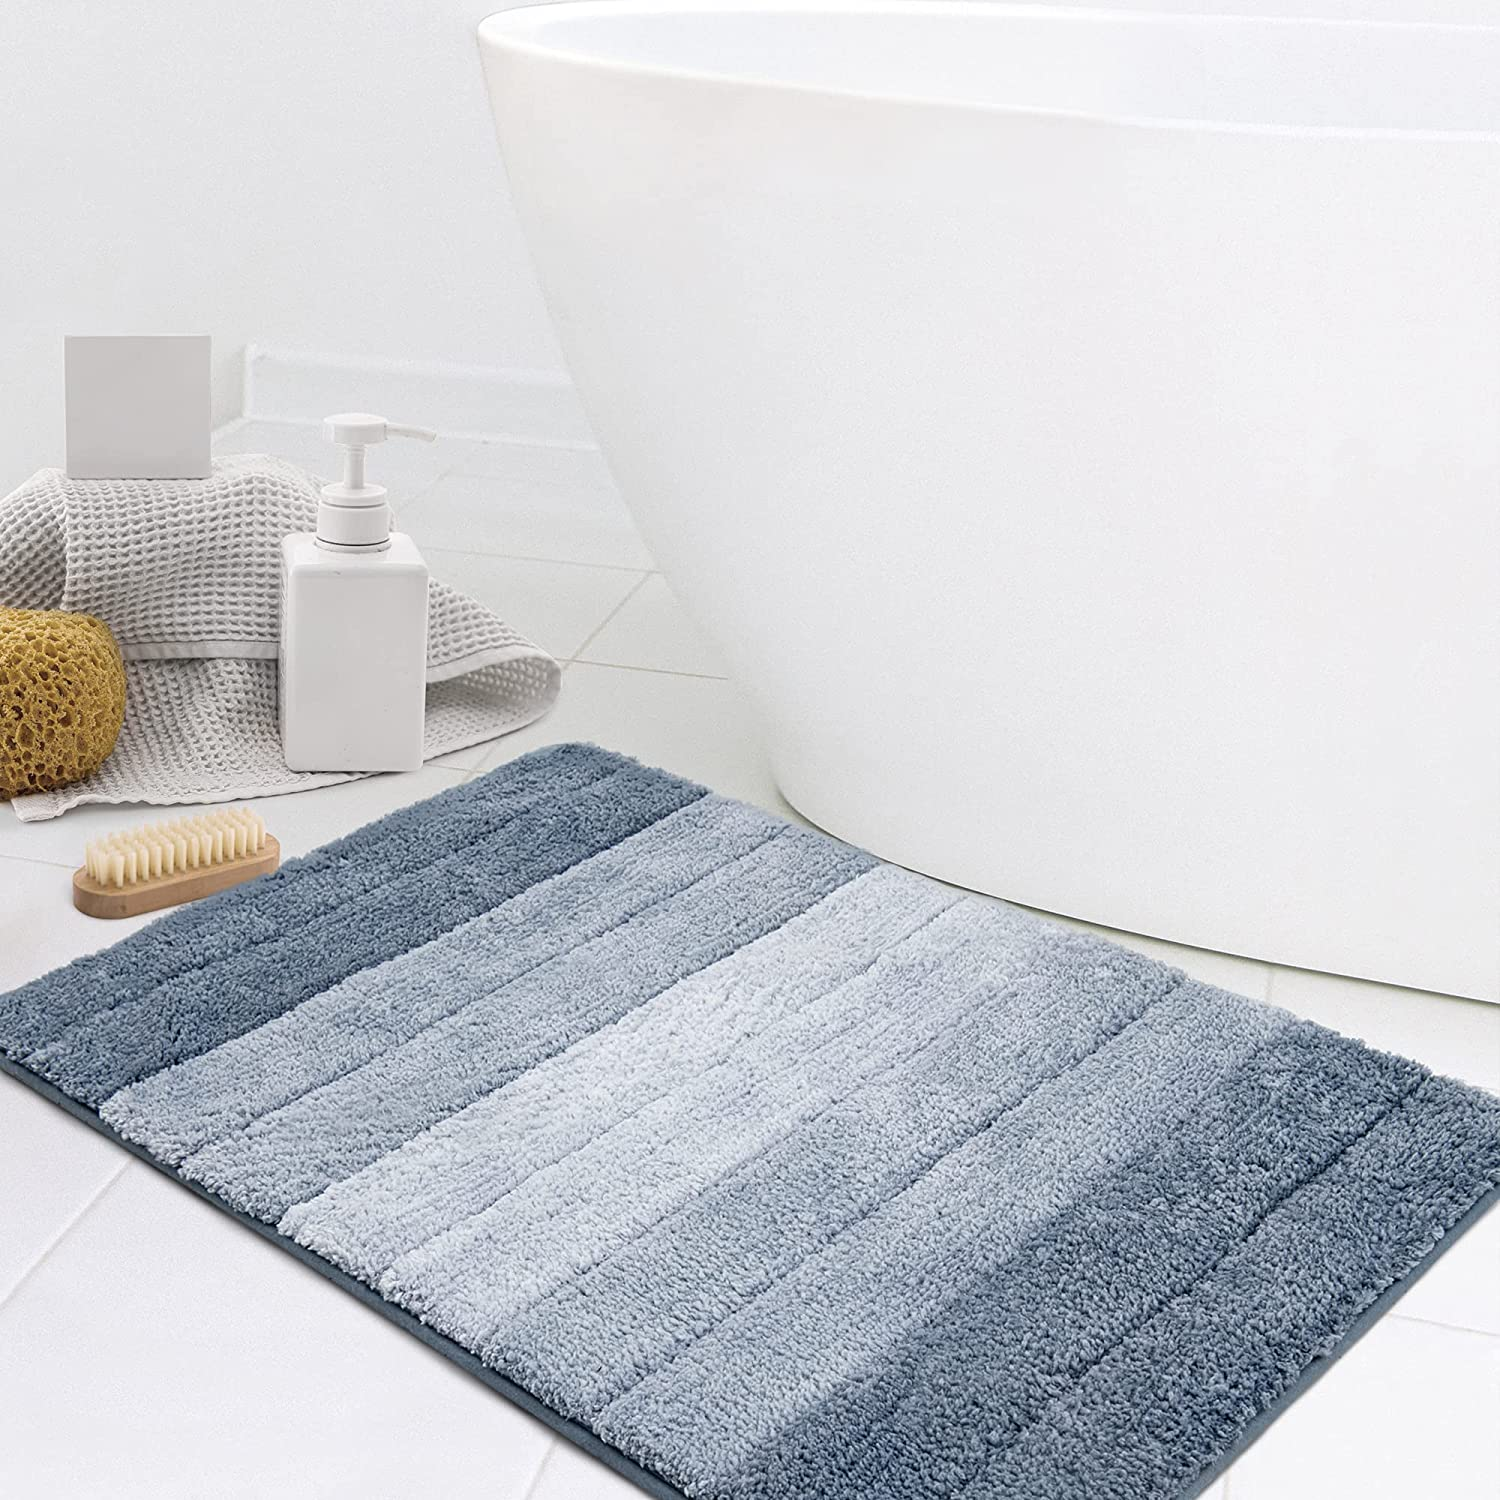 KMSON Ombre Bathroom Rugs Bath Mat Non Ultra Soft Slip Wate and Inventory cleanup selling sale supreme